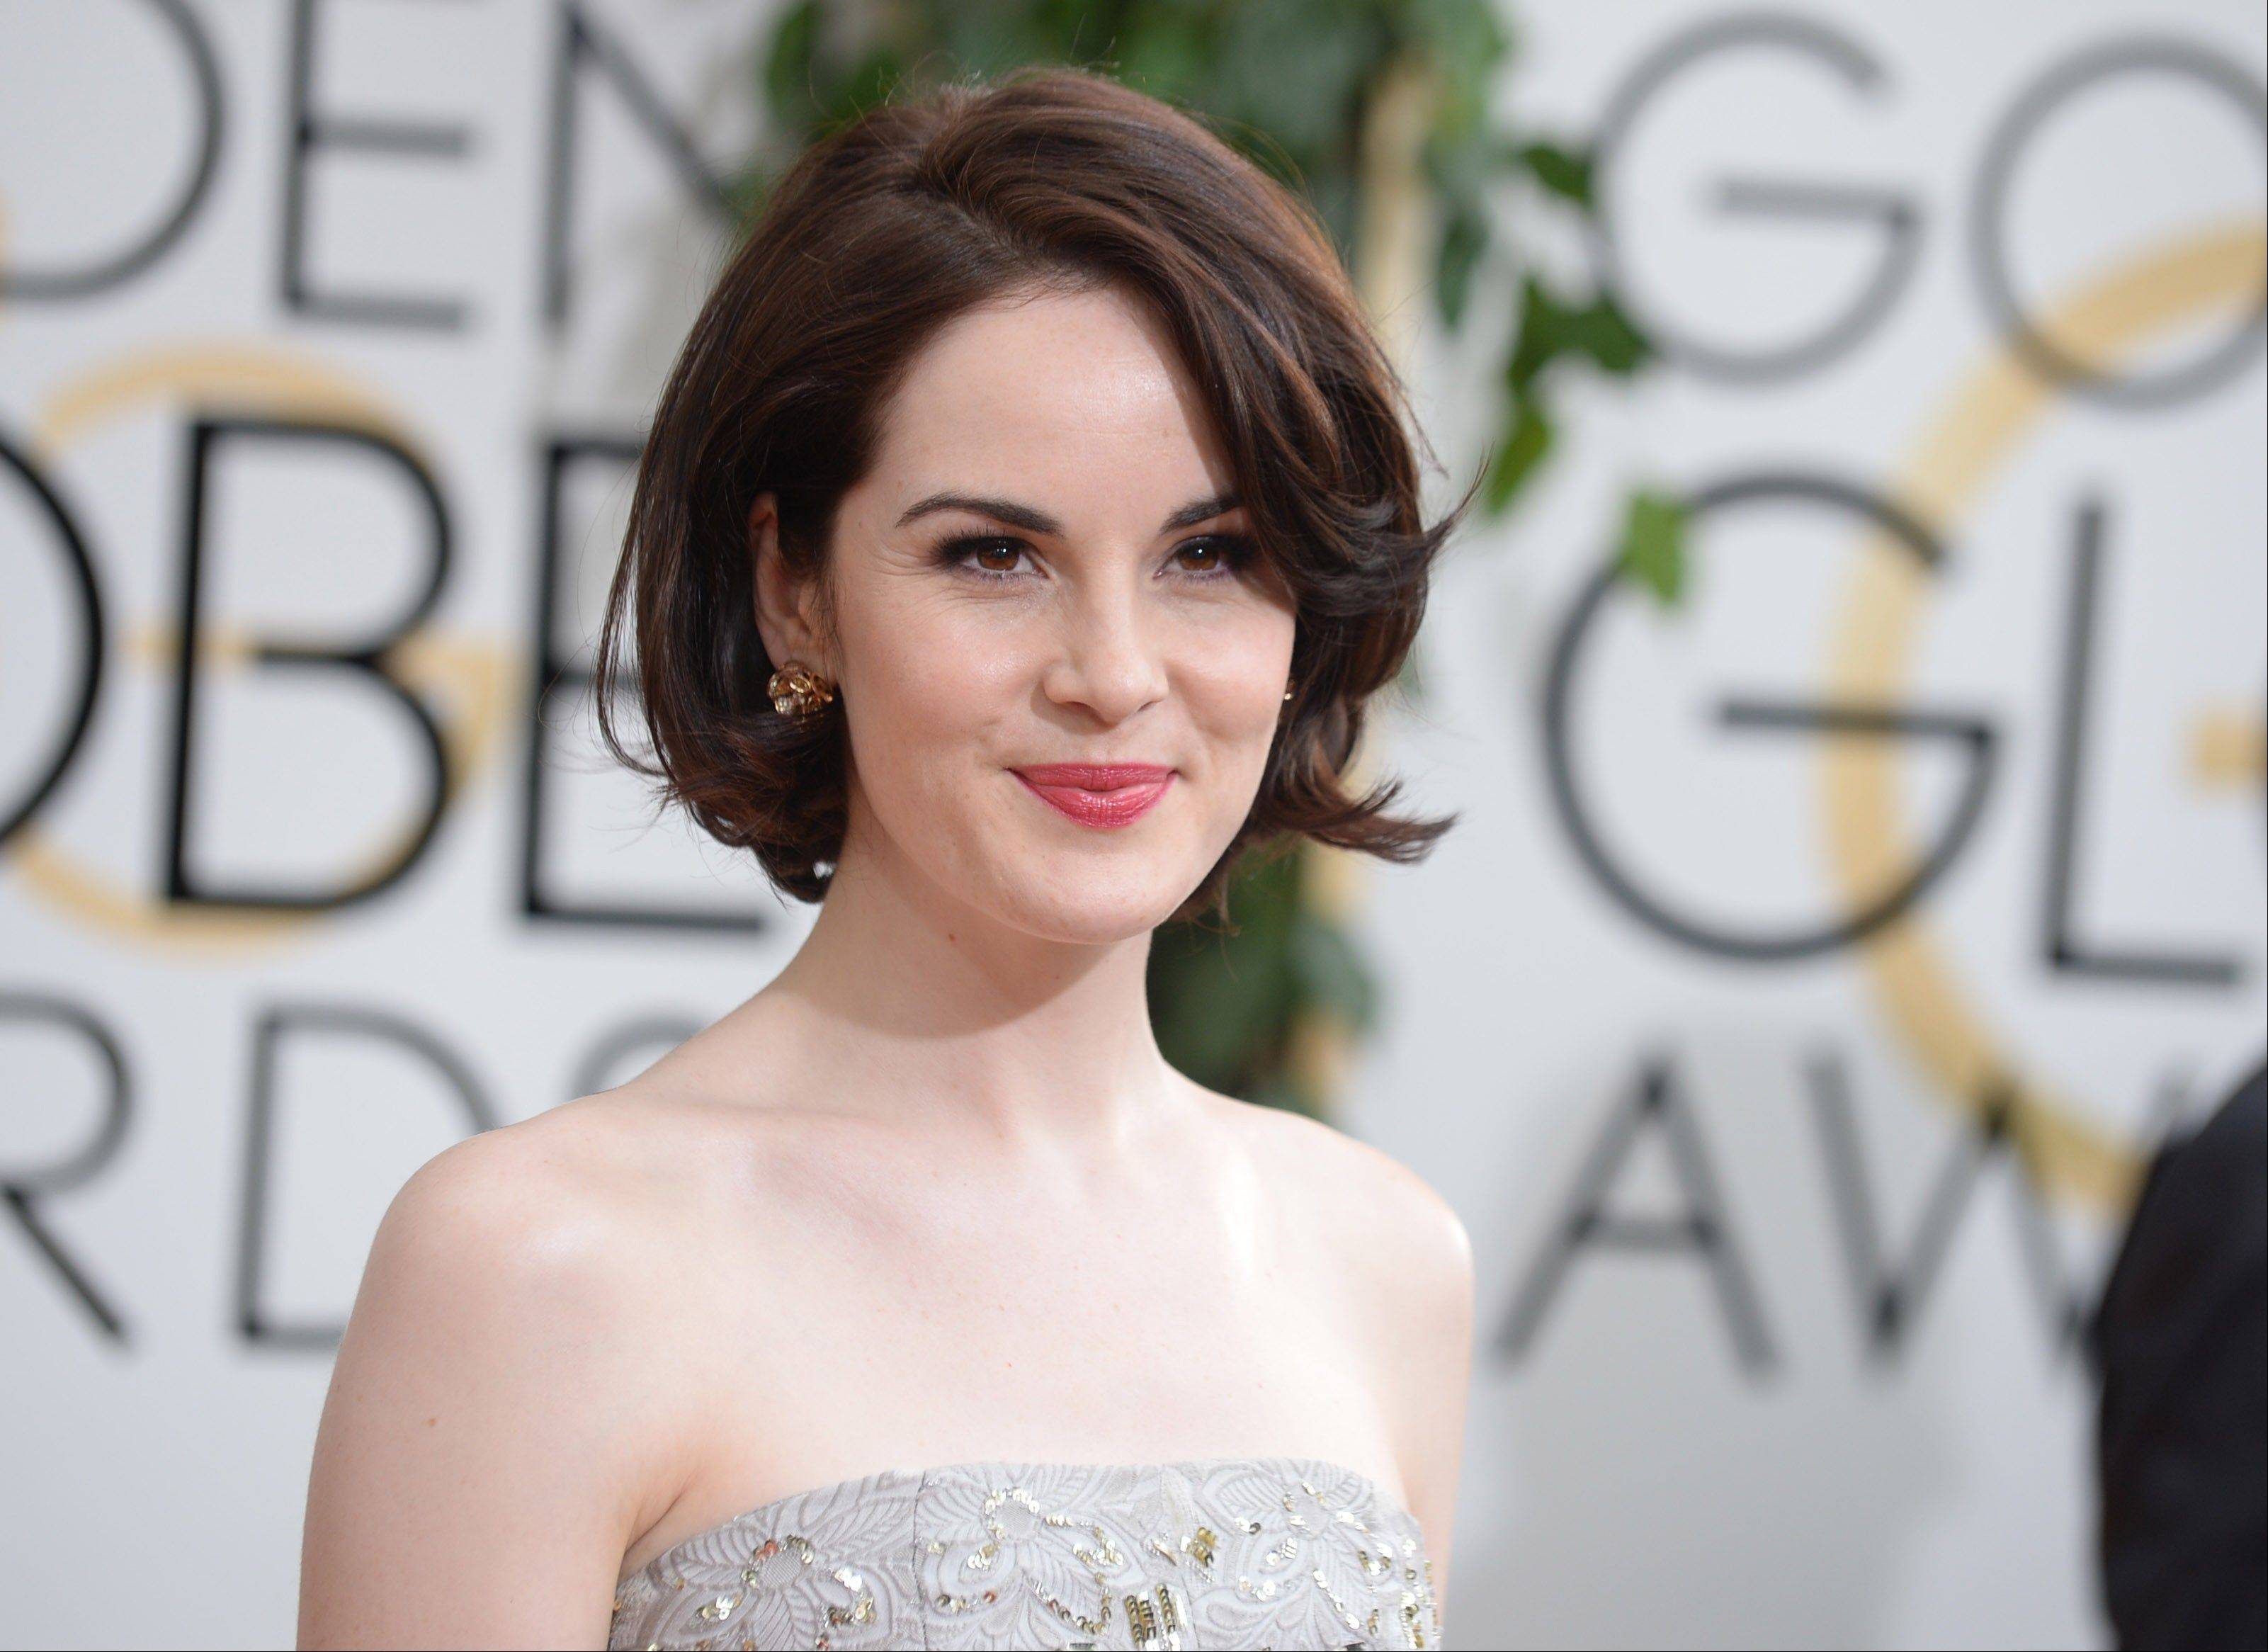 """Downton Abbey"" star Michelle Dockery arrives looking a little more glam and modern than viewers are used to seeing her."